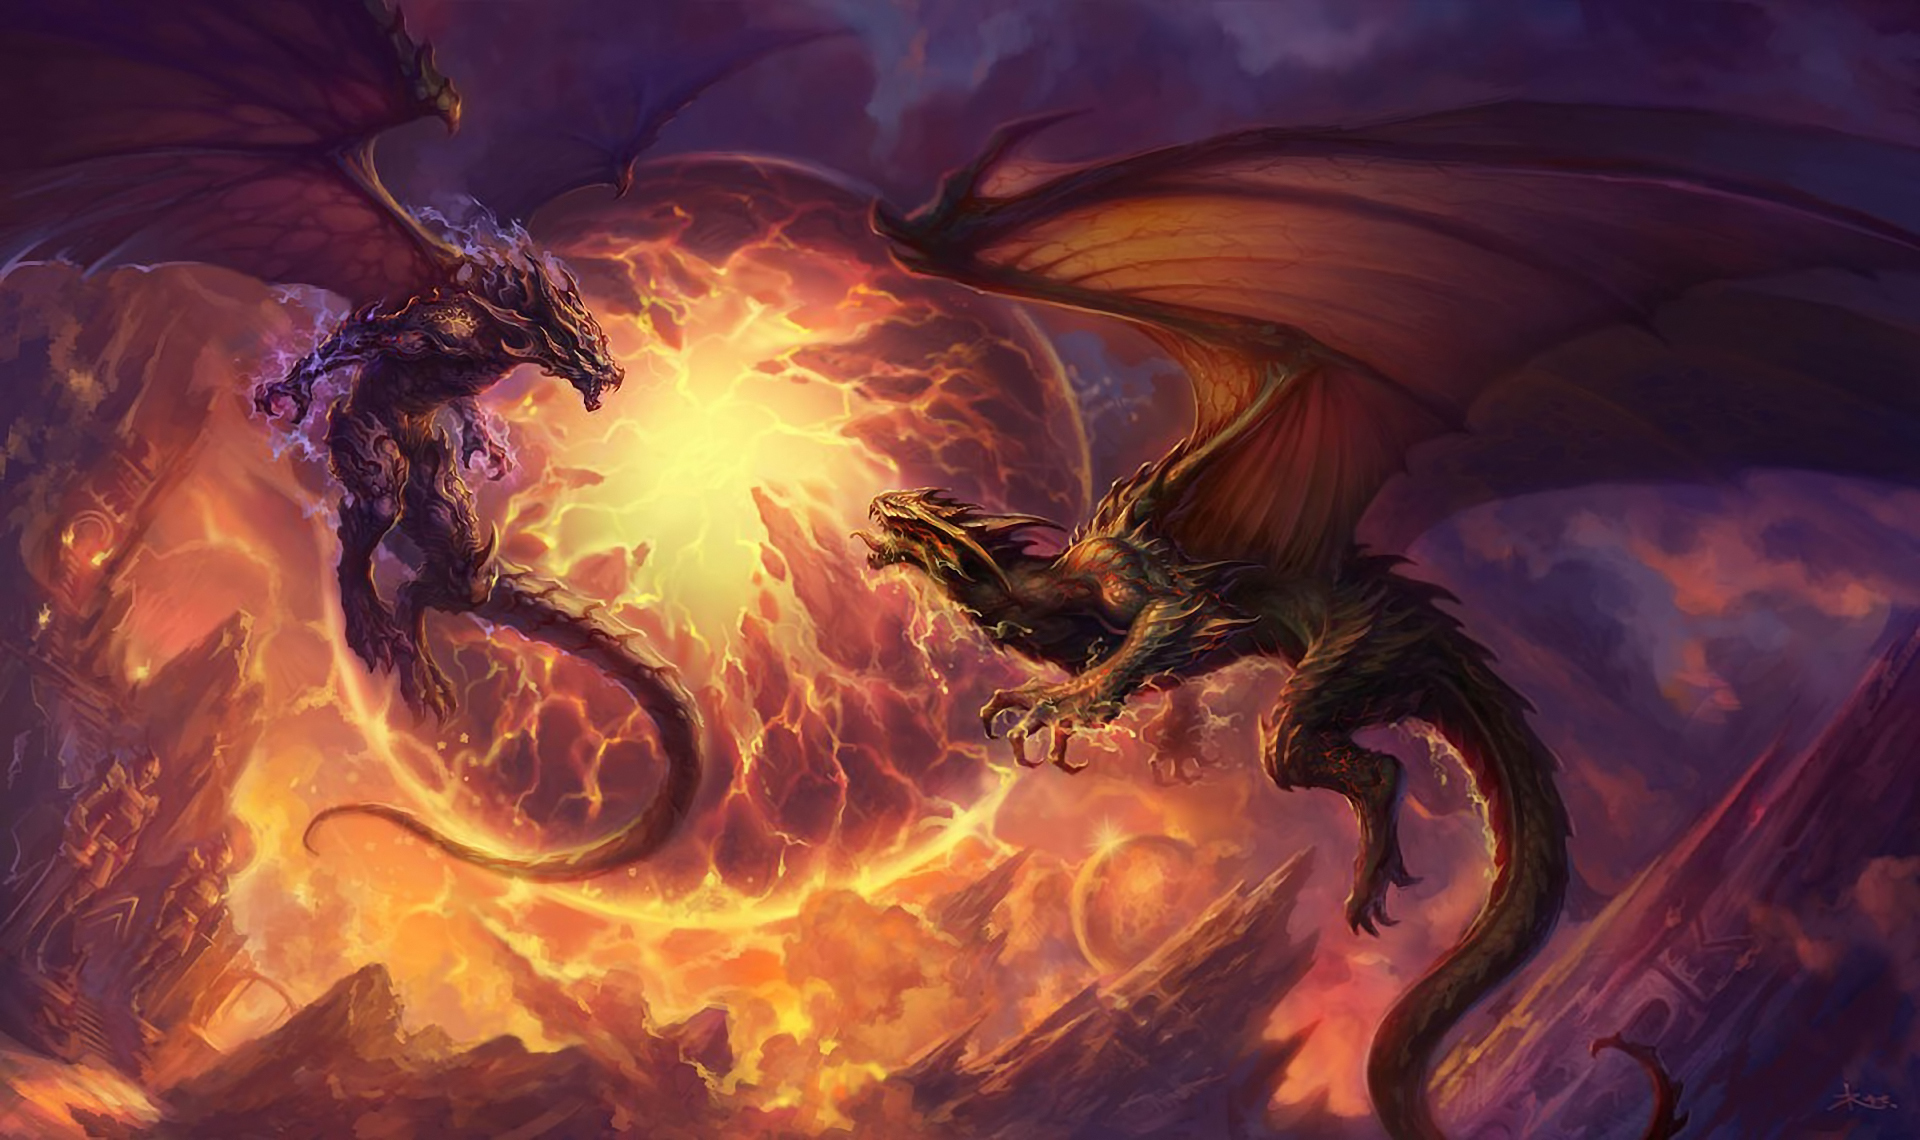 MOVIES page of ULTIMATE SCIENCE FICTION WEB GUIDE - Magic Dragon Space bat angel dragon pictures